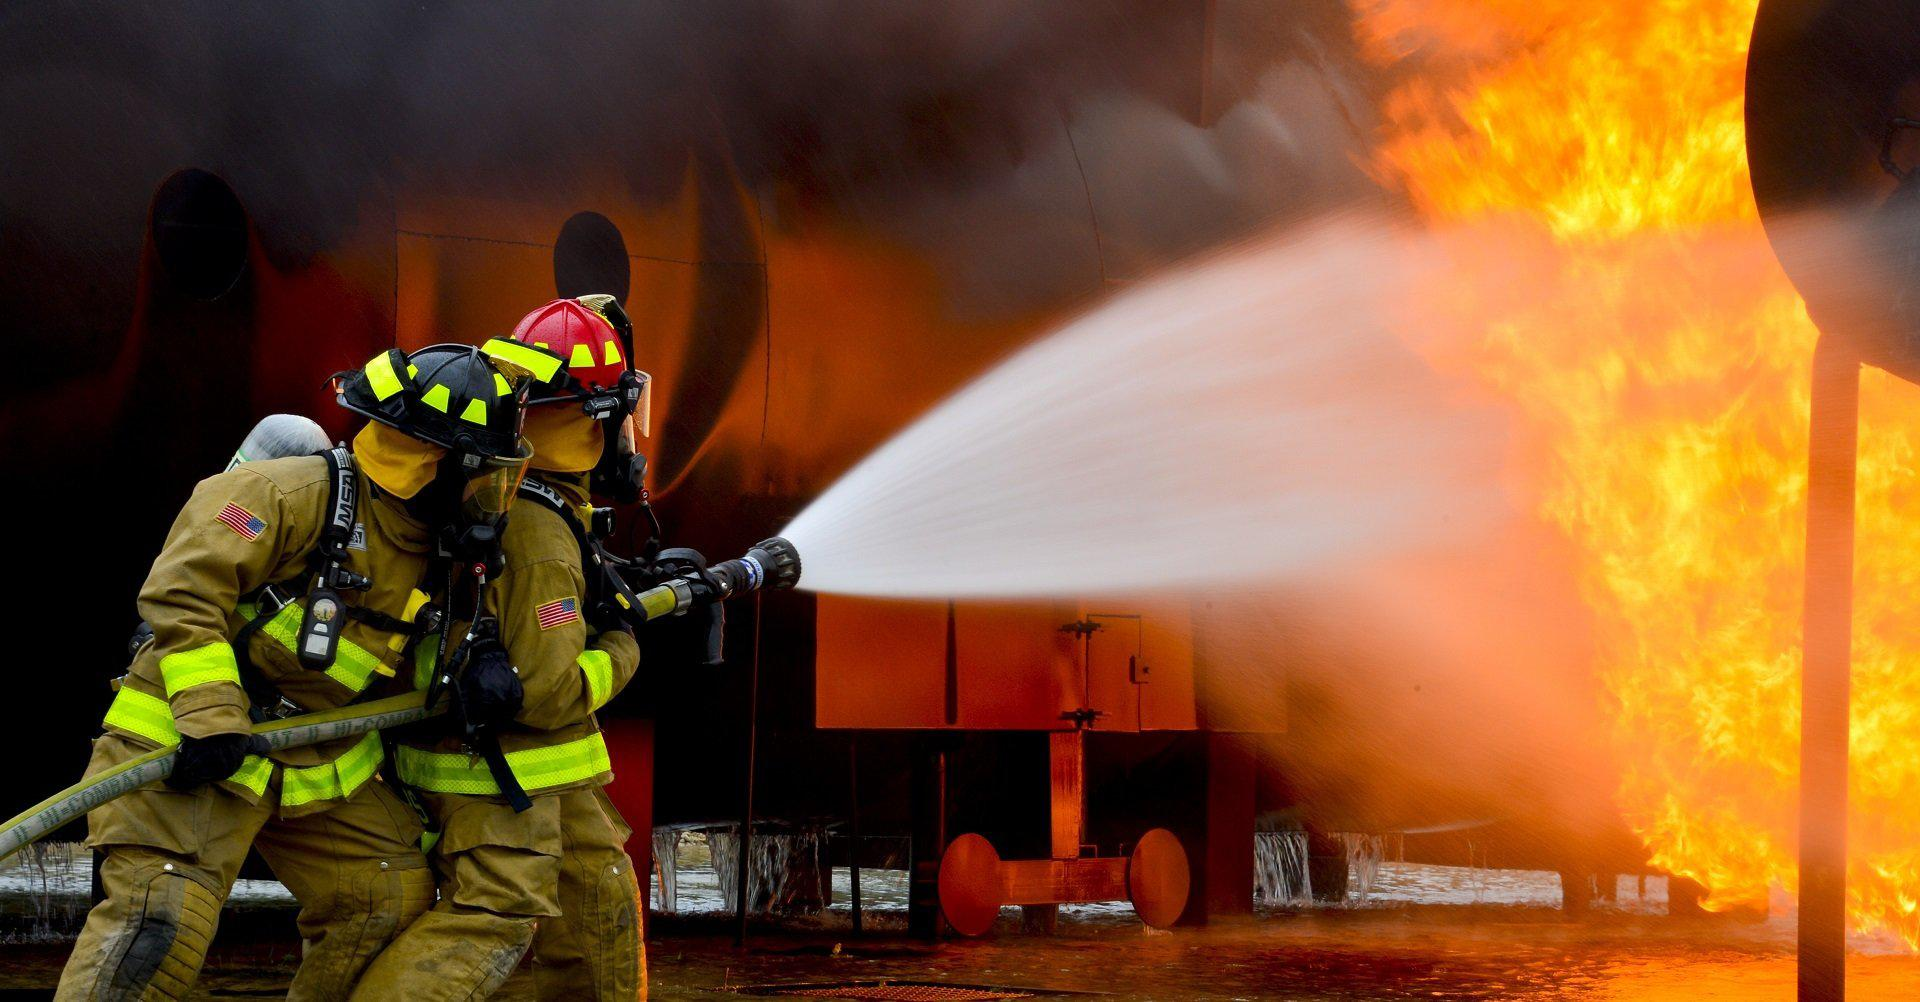 Do You Know How To Keep Your Workplace Safe - Fire And Safety